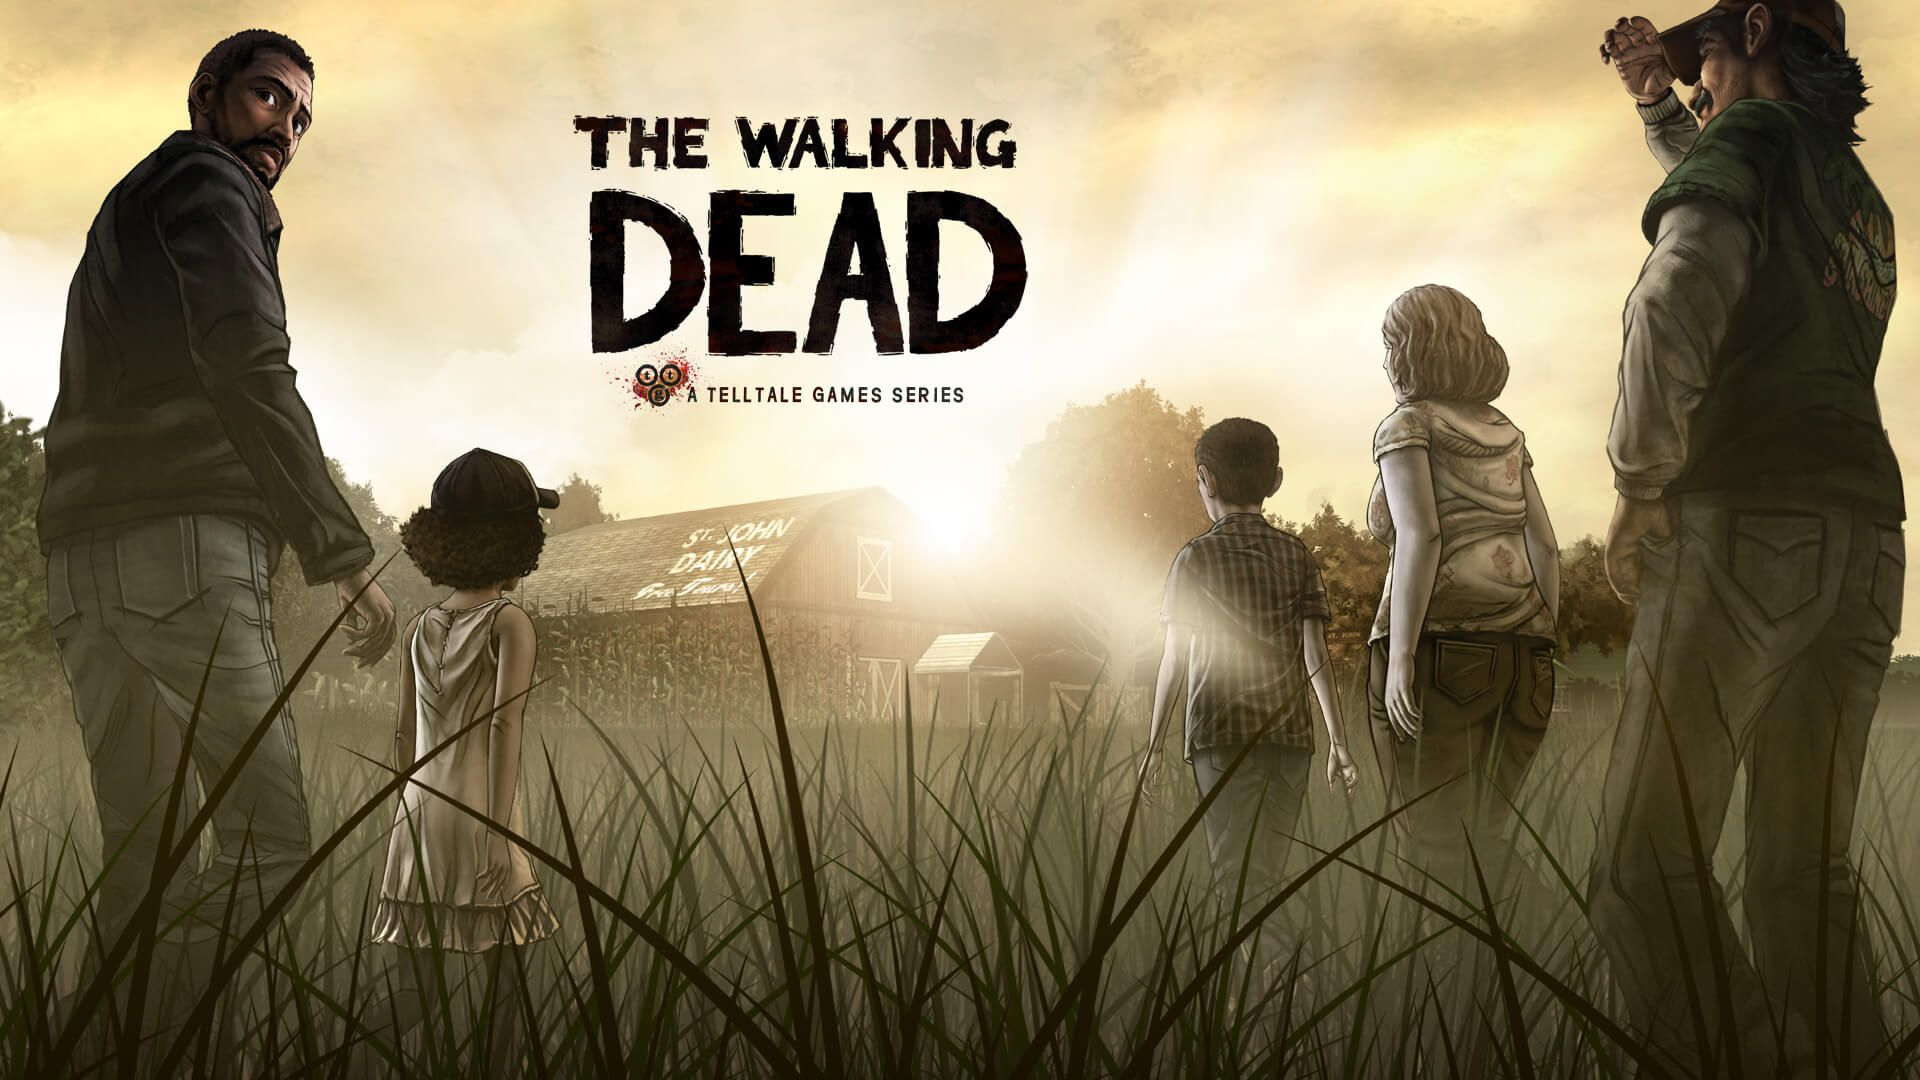 The Walking Dead The Complete First Season Principal